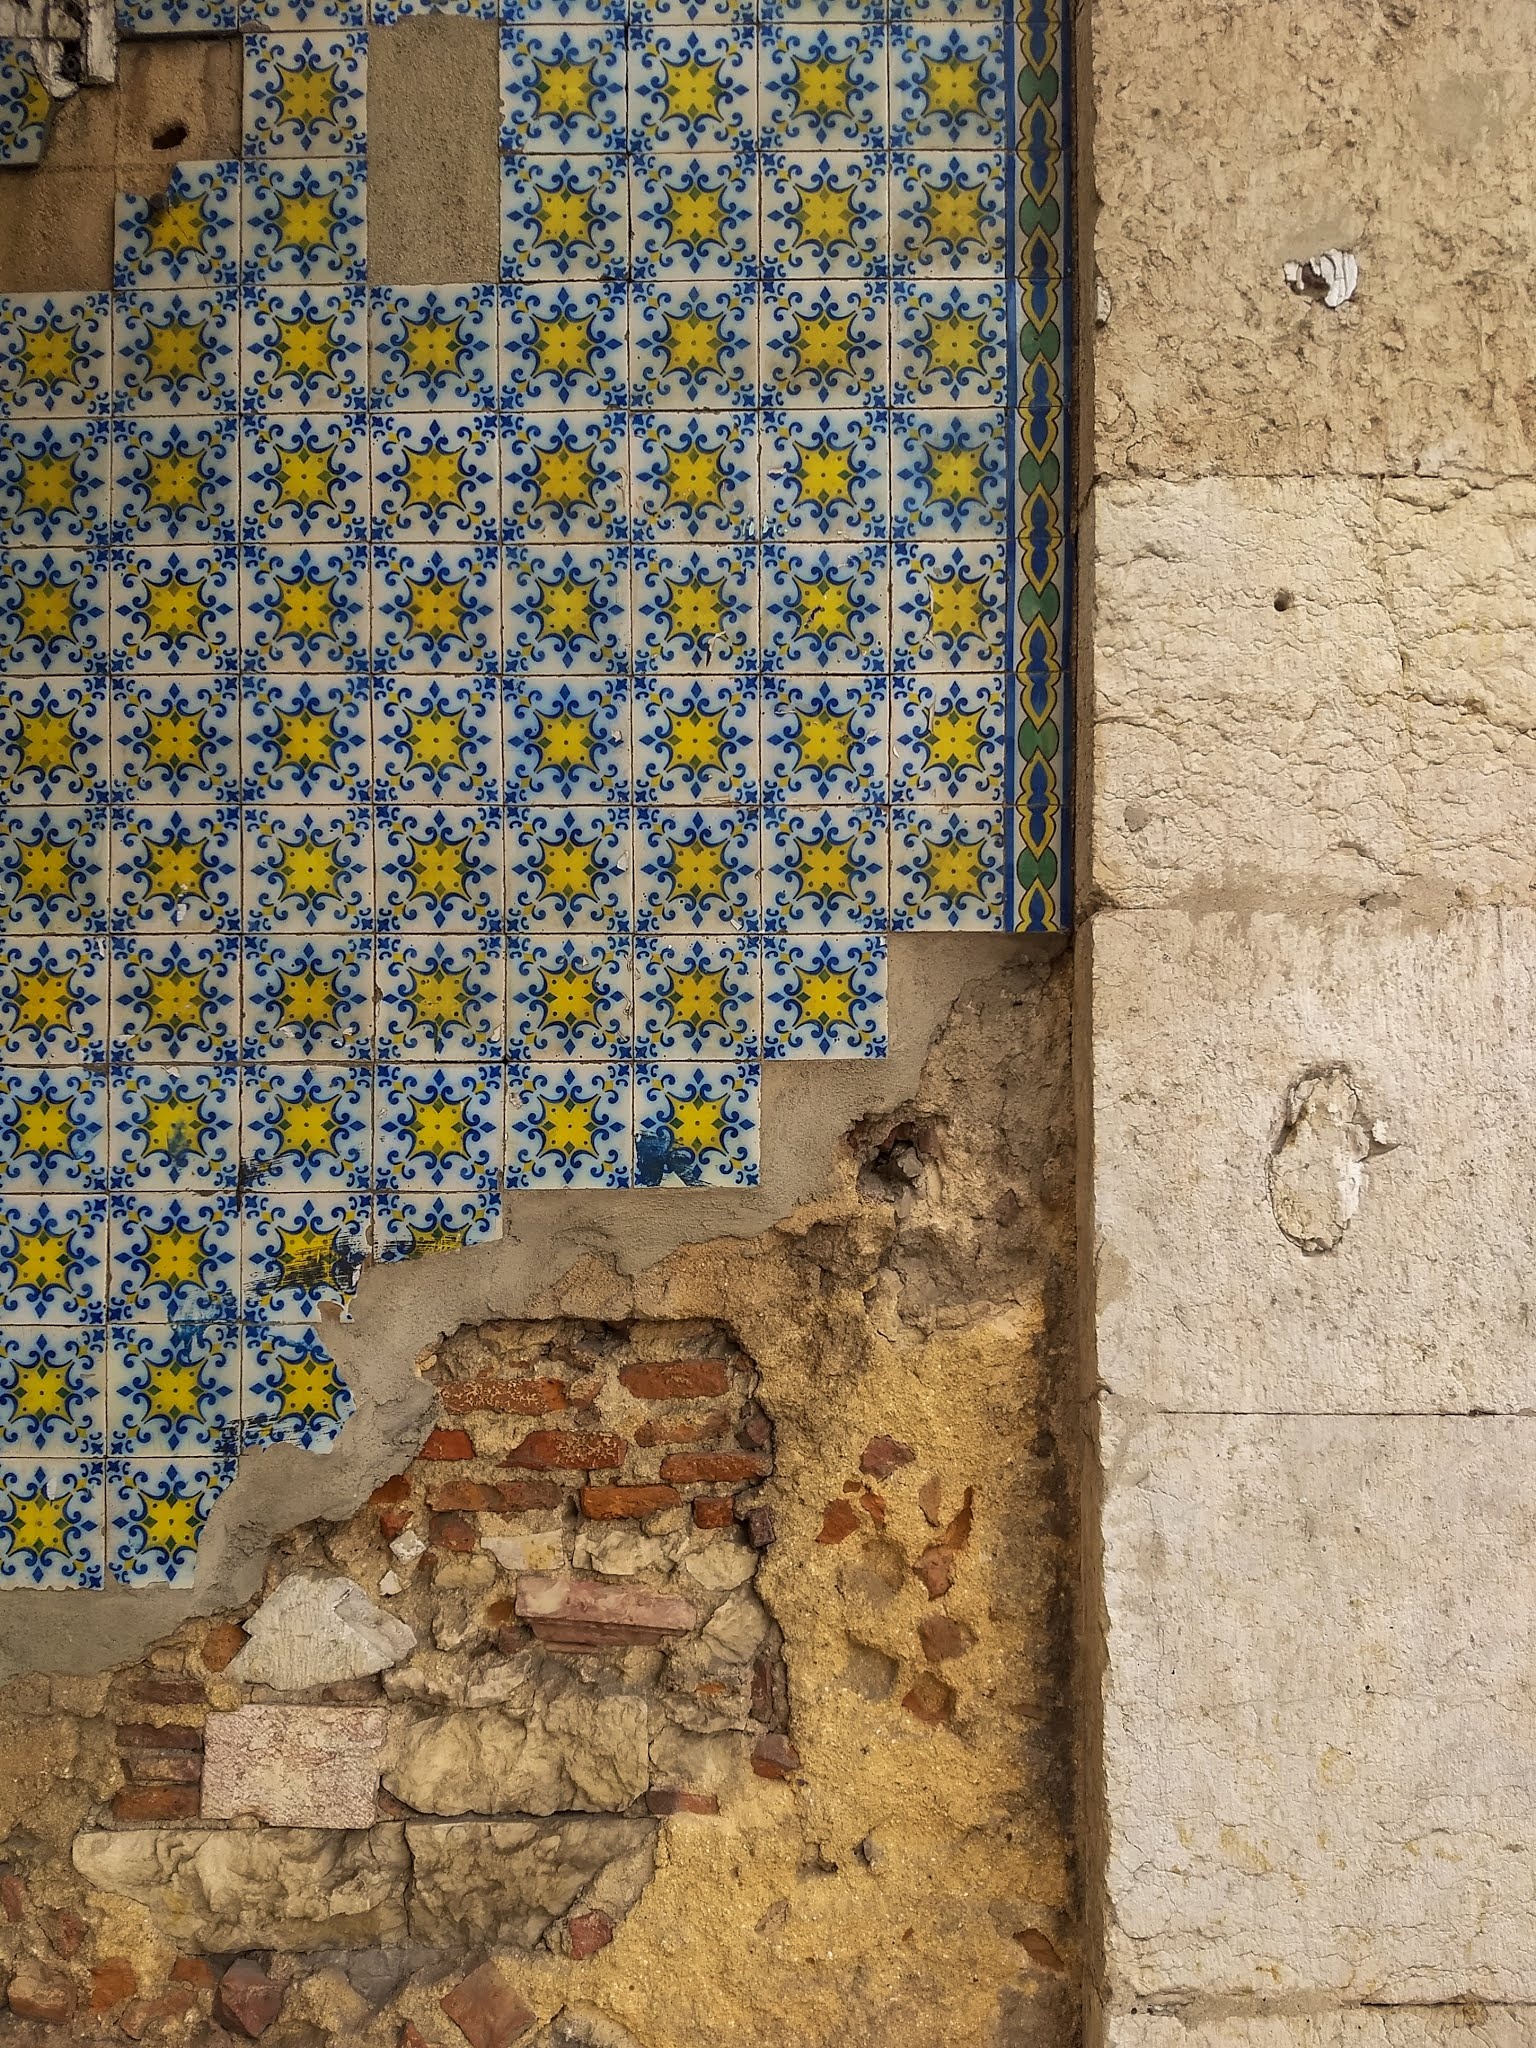 Old, crumbling tiled wall in Lisbon, Portugal.